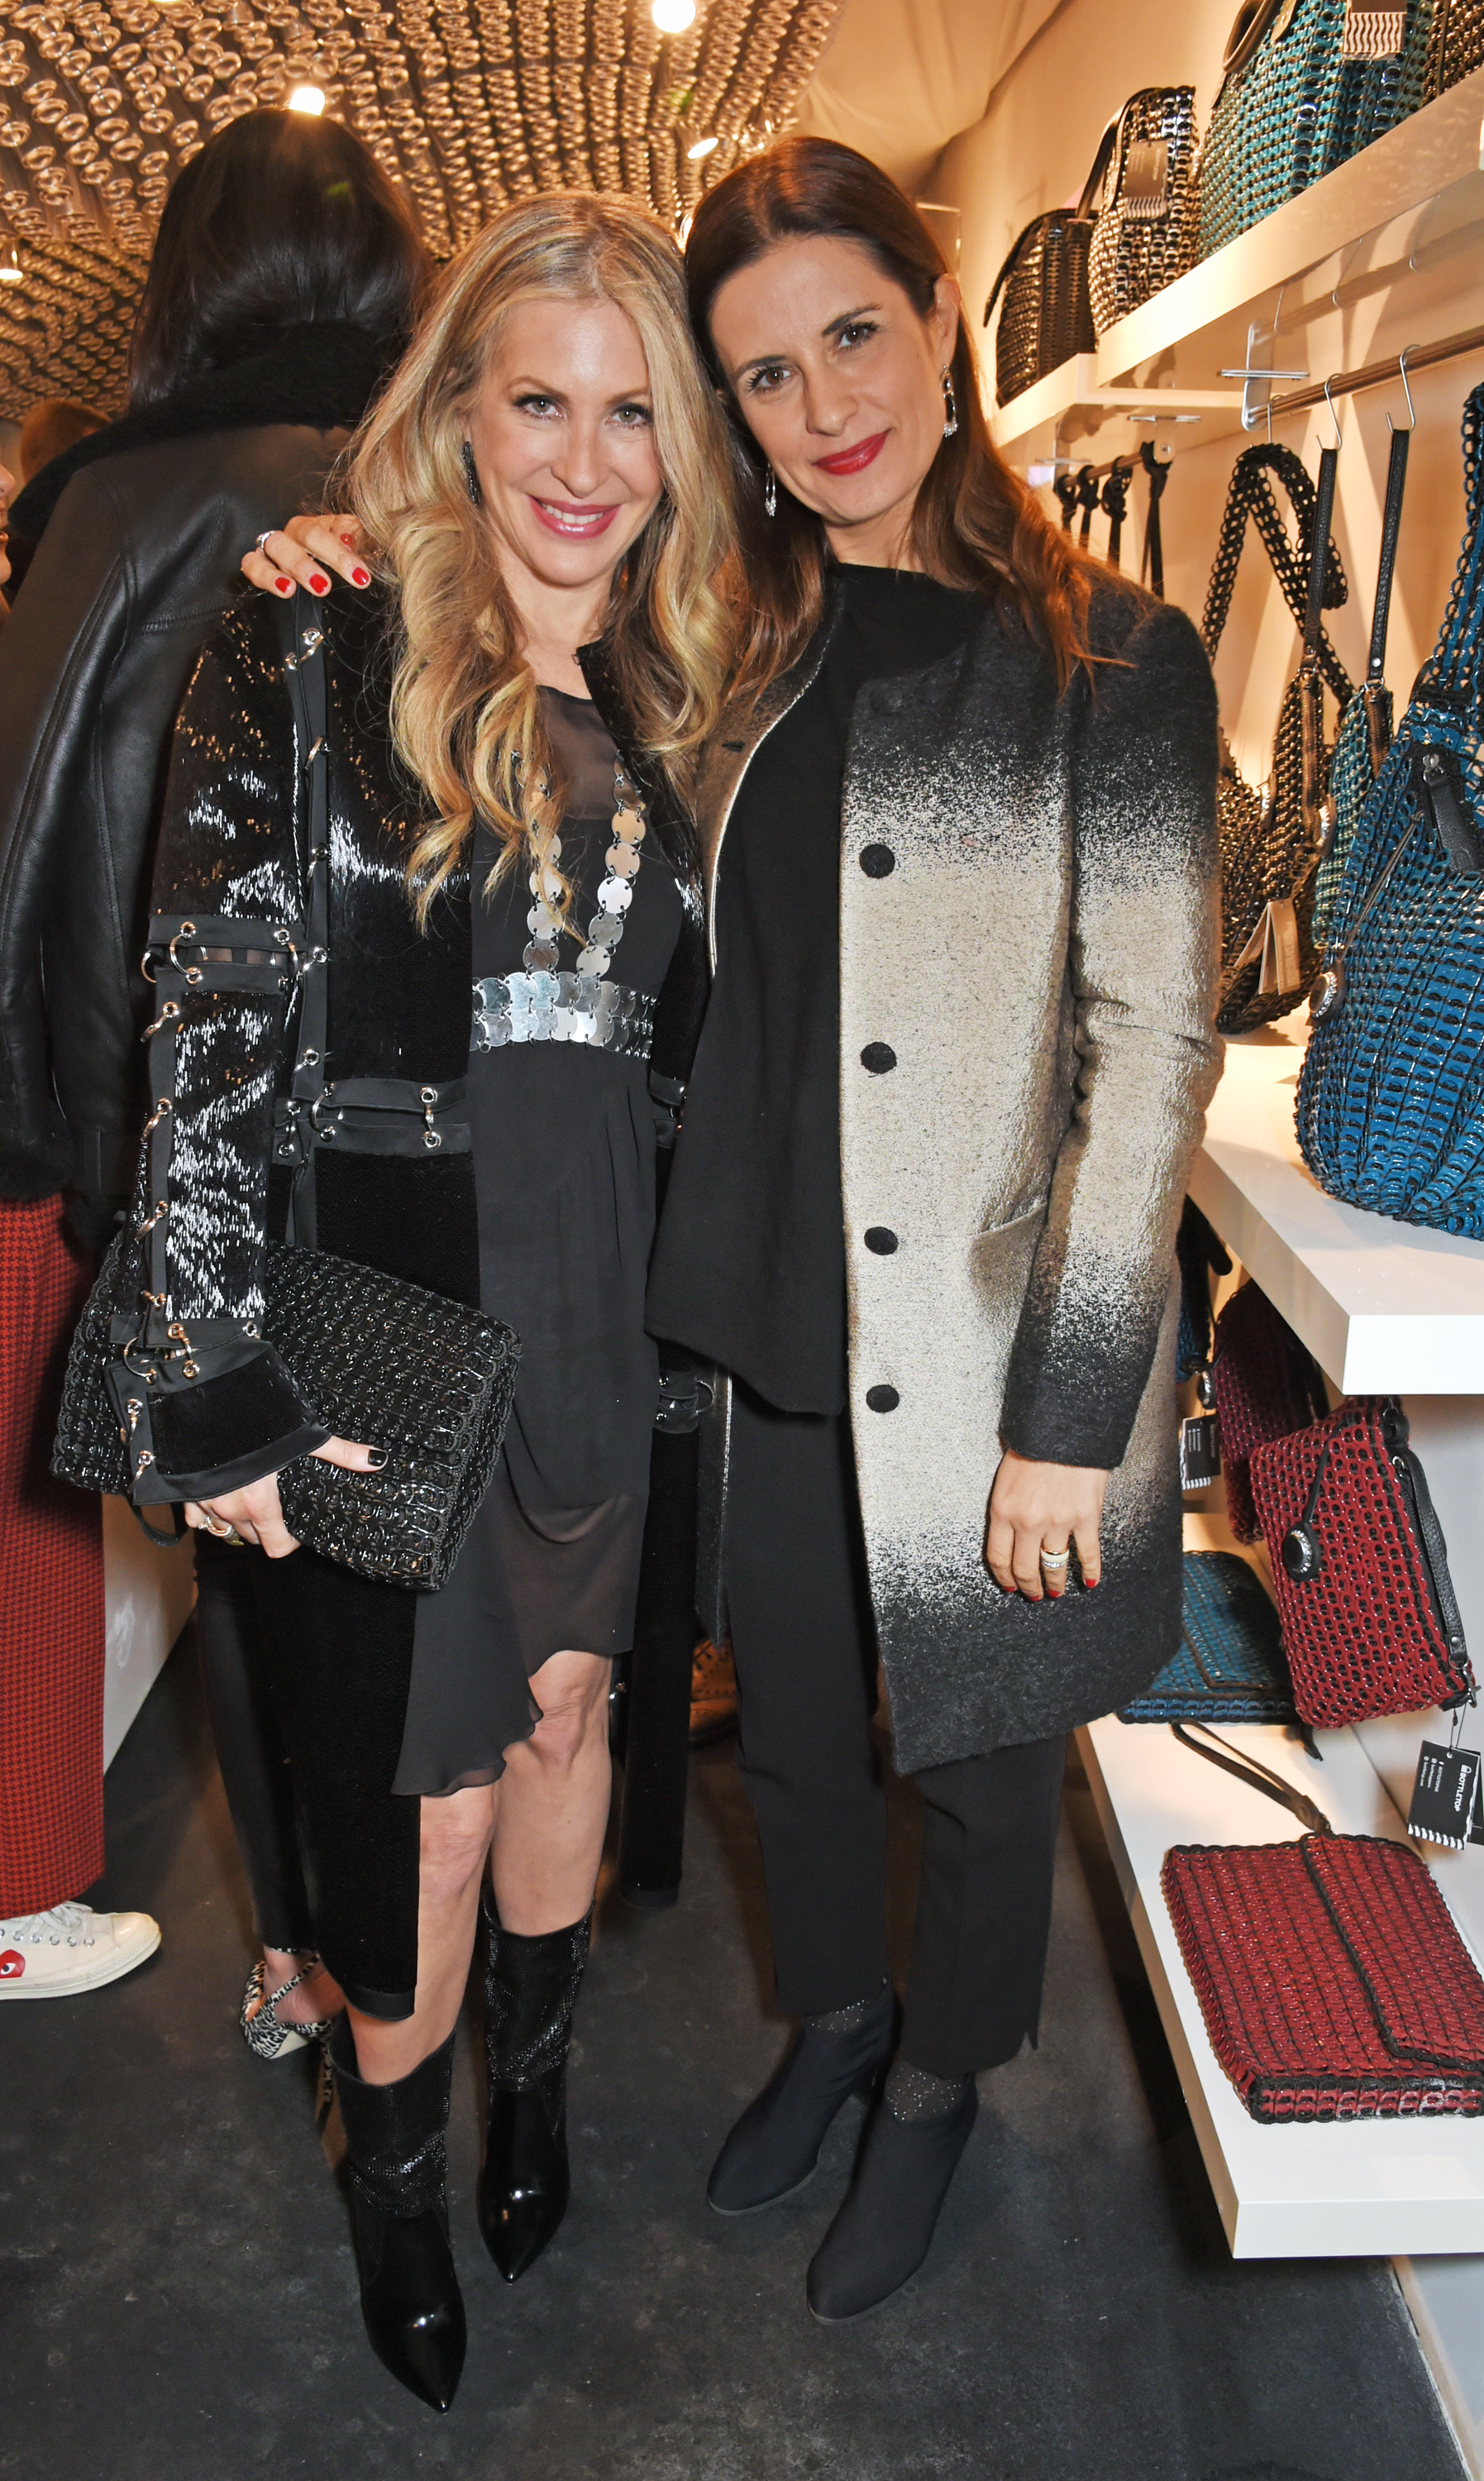 Carmen and Eco-Age founder Livia Firth at the launch of Bottletop's sustainable store in London.